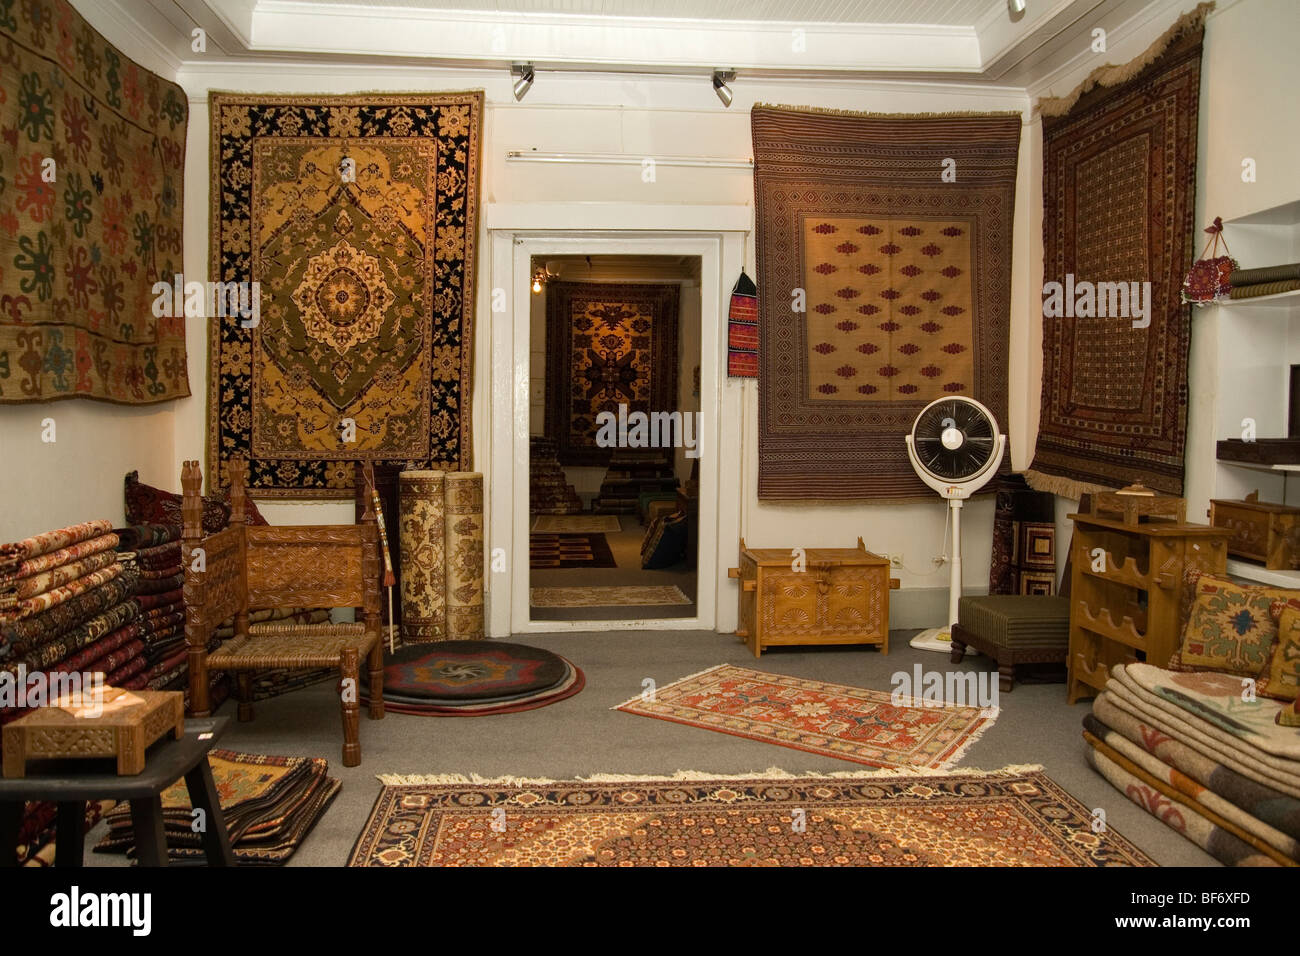 designer boutique selling interior designs in soft furnishing and stock photo royalty free